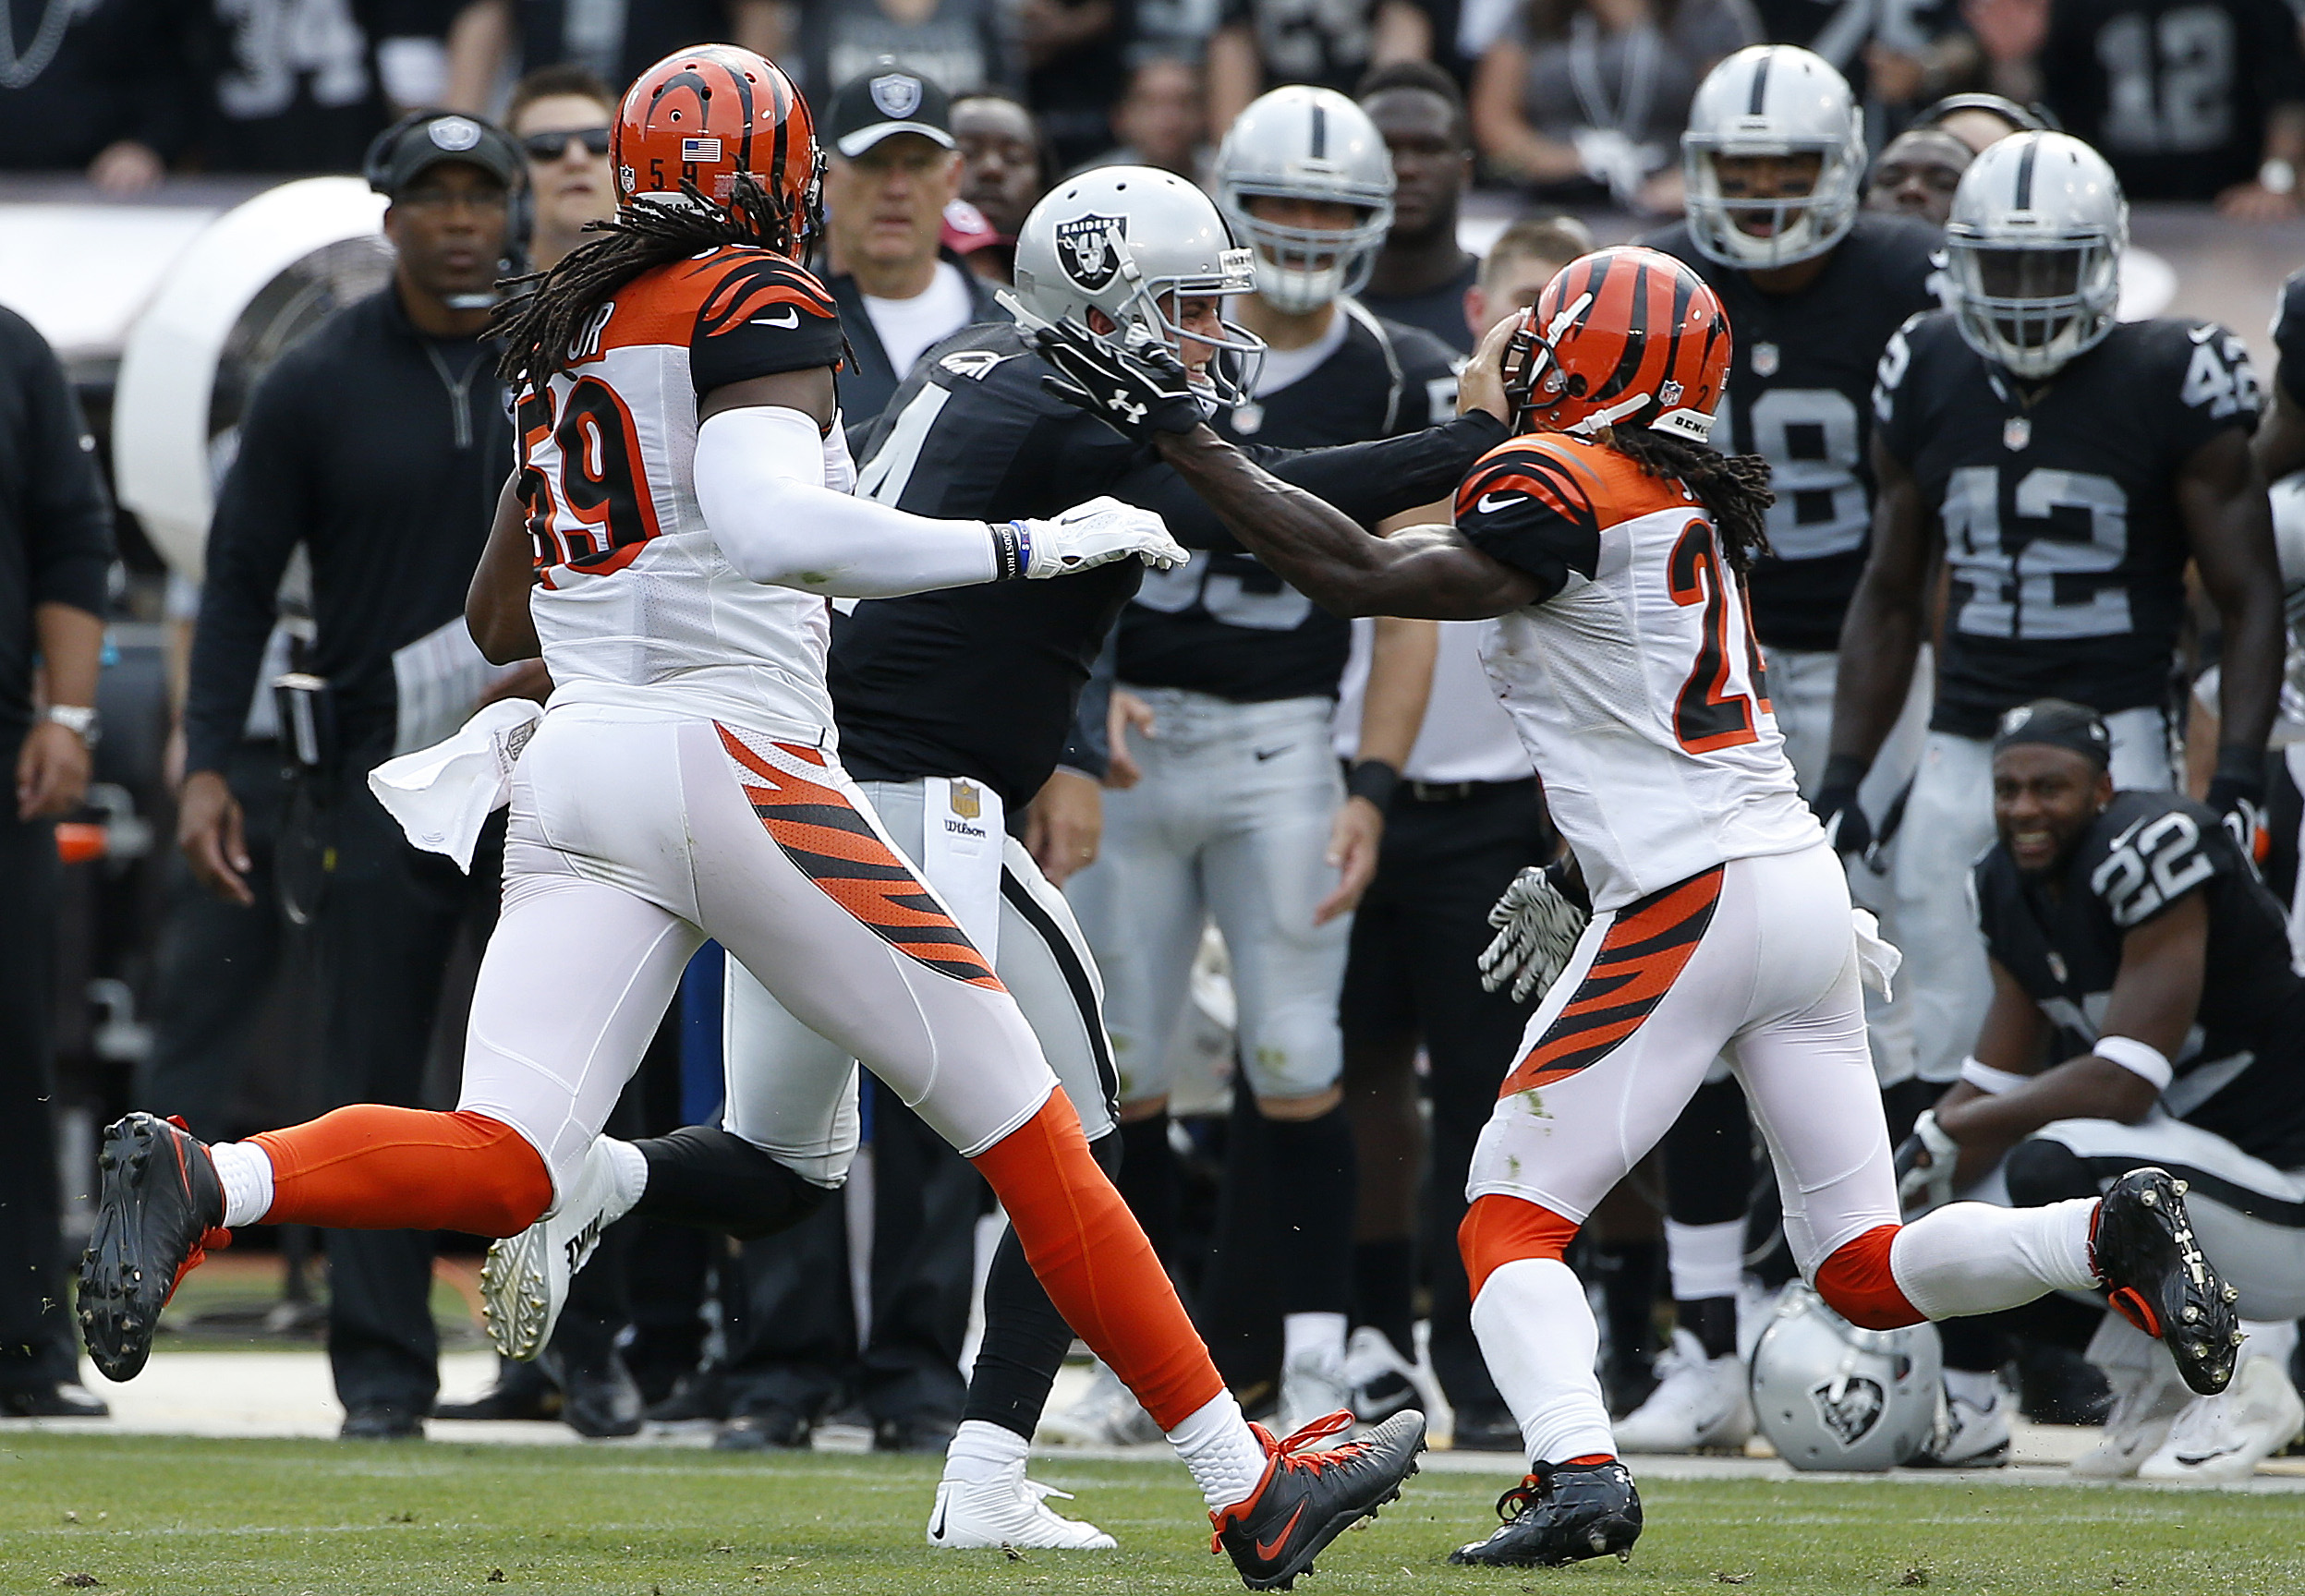 Oakland Raiders quarterback Derek Carr (4) stiff arms Cincinnati Bengals cornerback Adam Jones during the first half of an NFL football game in Oakland, Calif., Sunday, Sept. 13, 2015. The Bengals won 33-13. Carr was injured on the play and did not return